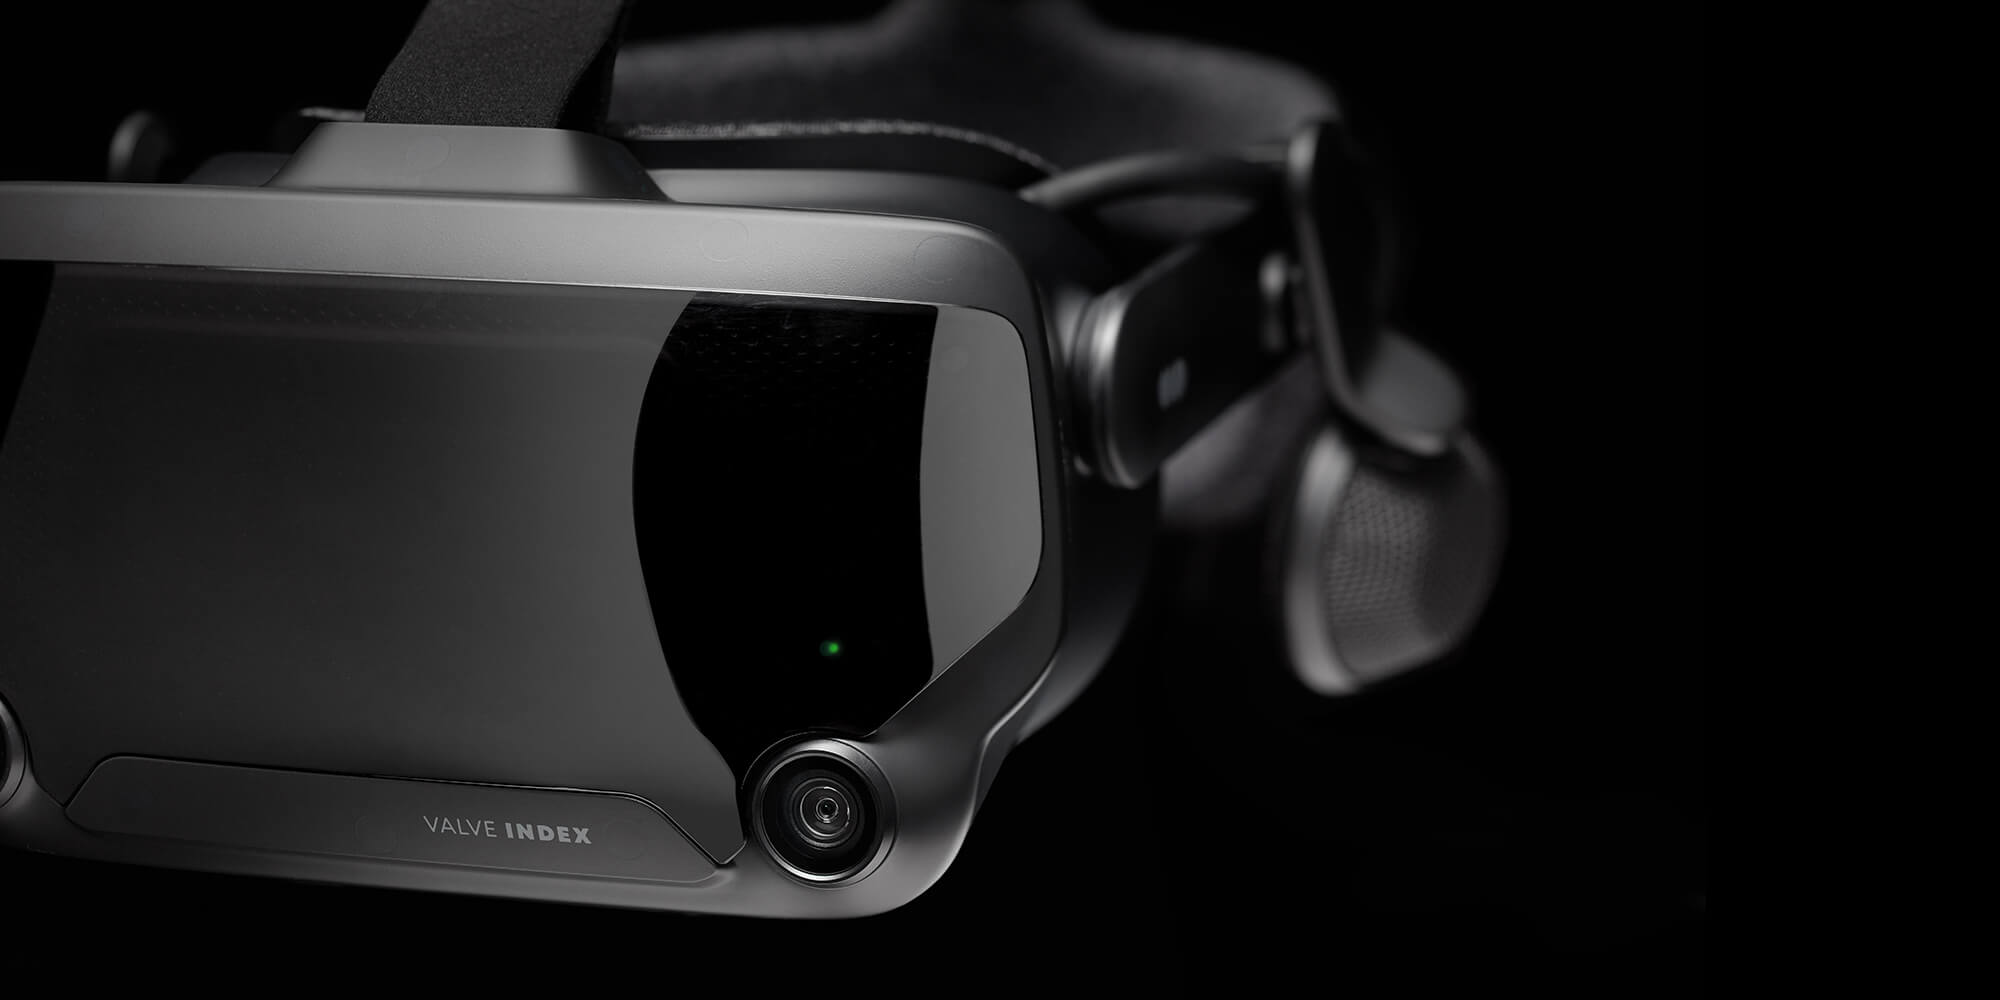 Valve's Index VR kit goes on sale tomorrow for $999